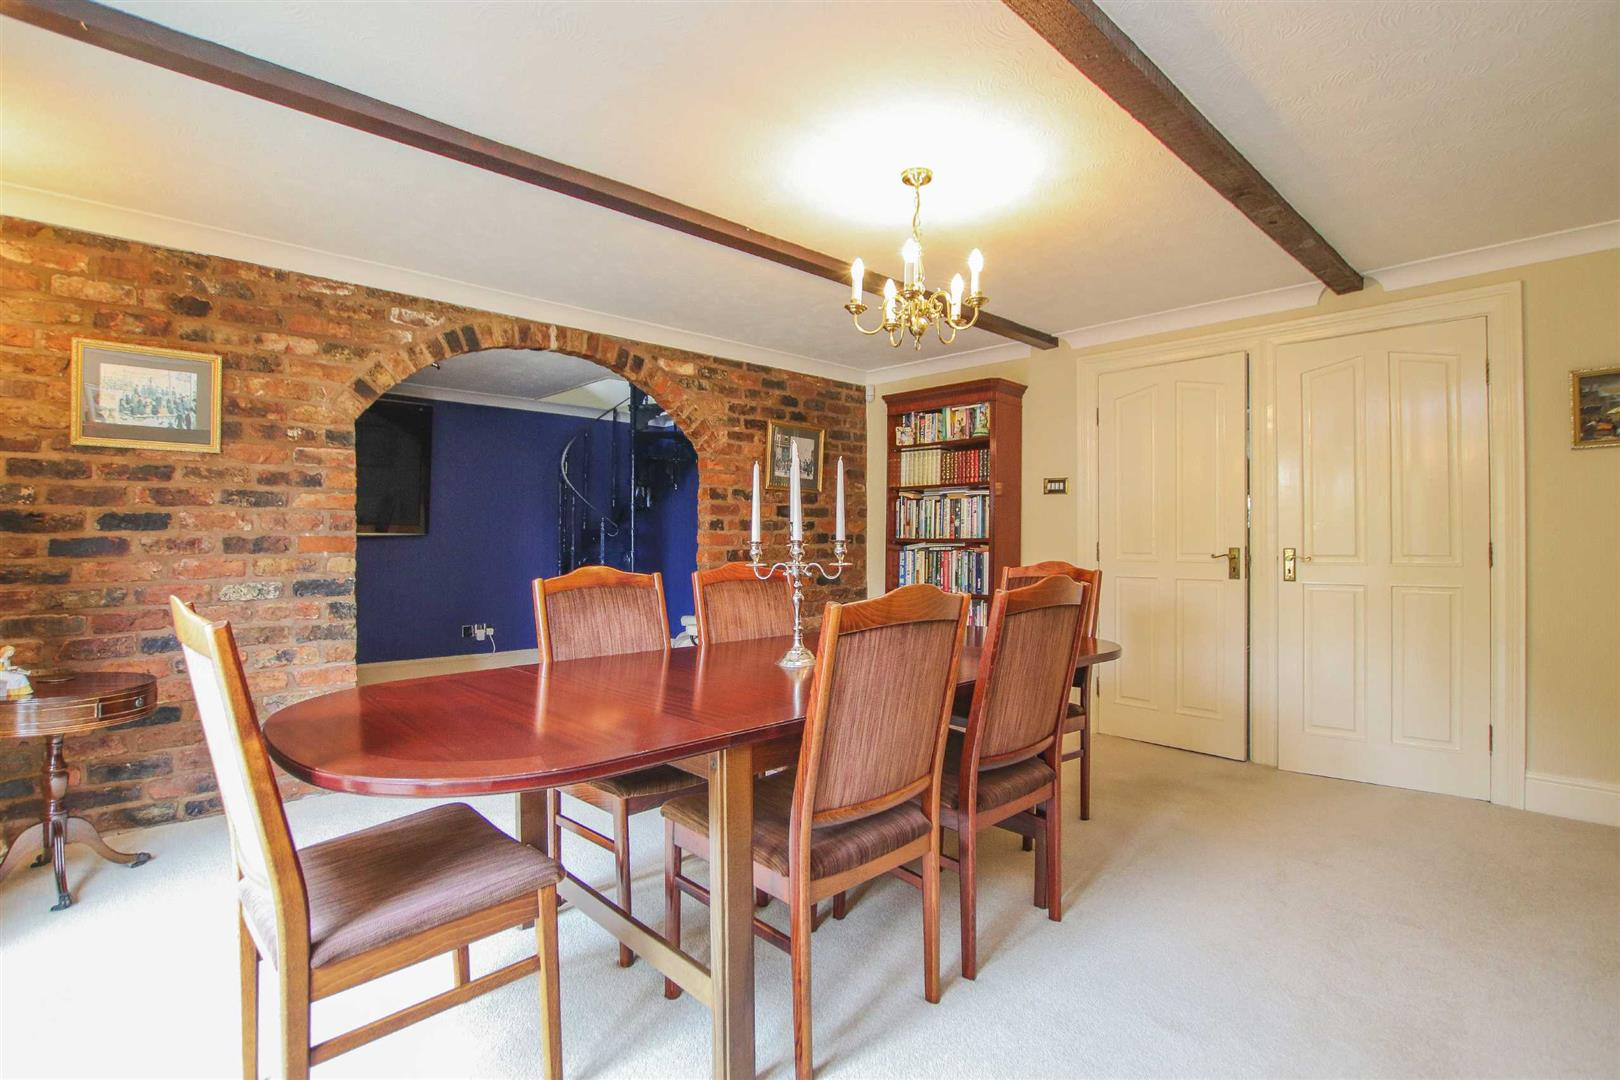 4 Bedroom Barn Conversion For Sale - p033135_47.jpg